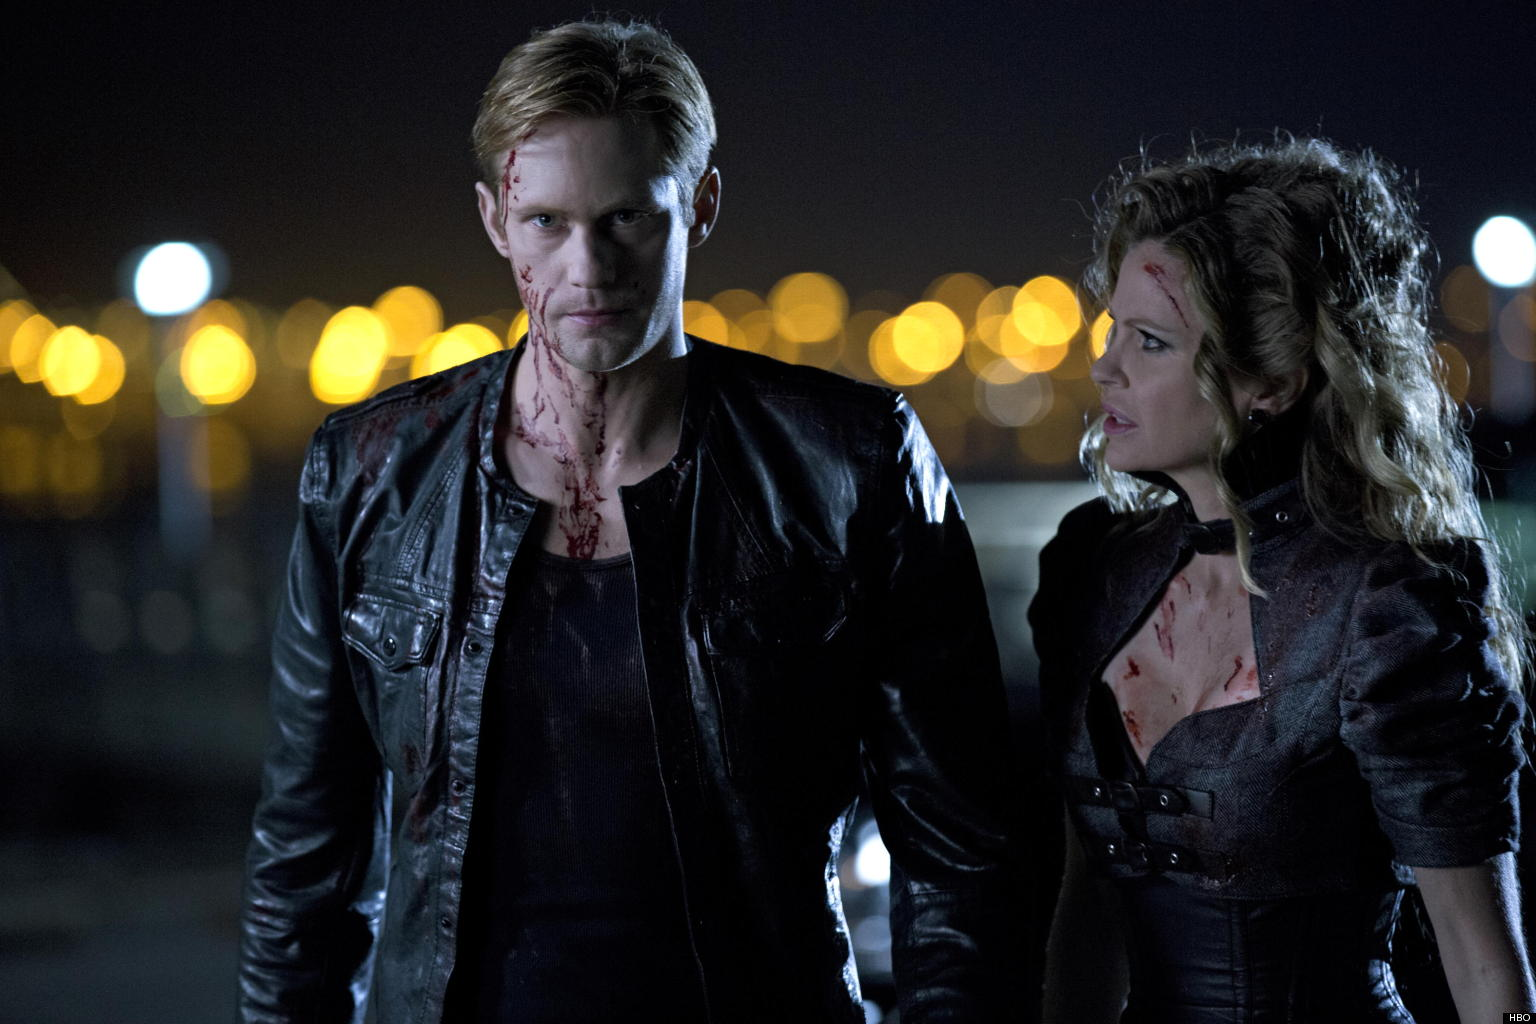 a drop of true blood List of true blood episodes  hbo began airing six mini-episodes of drop of true blood on april 24, 2010 to lead up to the season three premiere no.